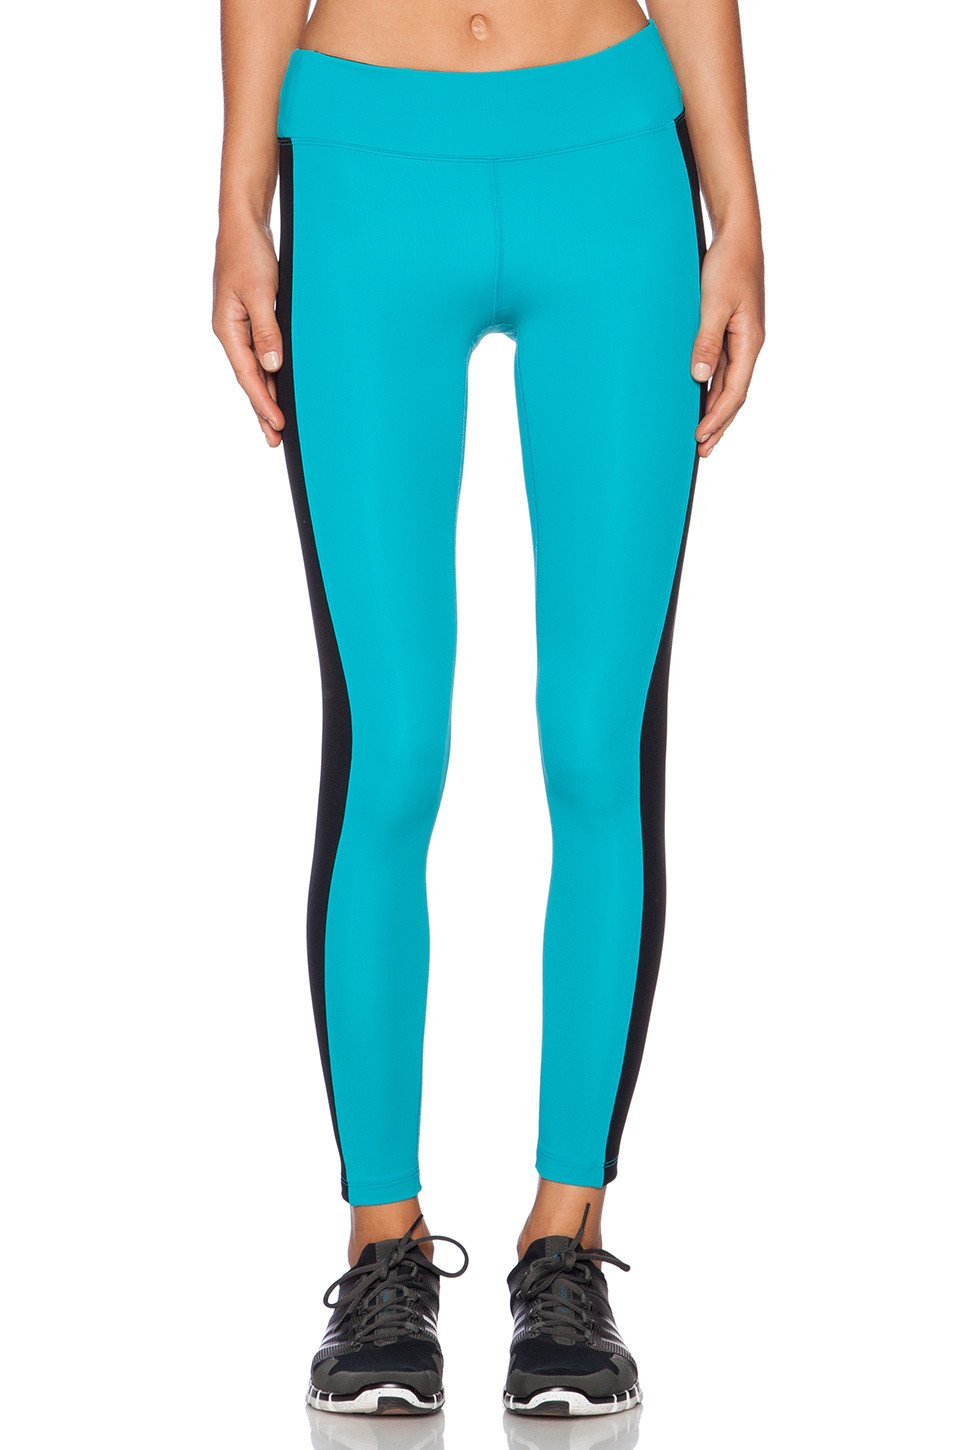 Dynamic Duo Crop Legging - Kustom Label - 1